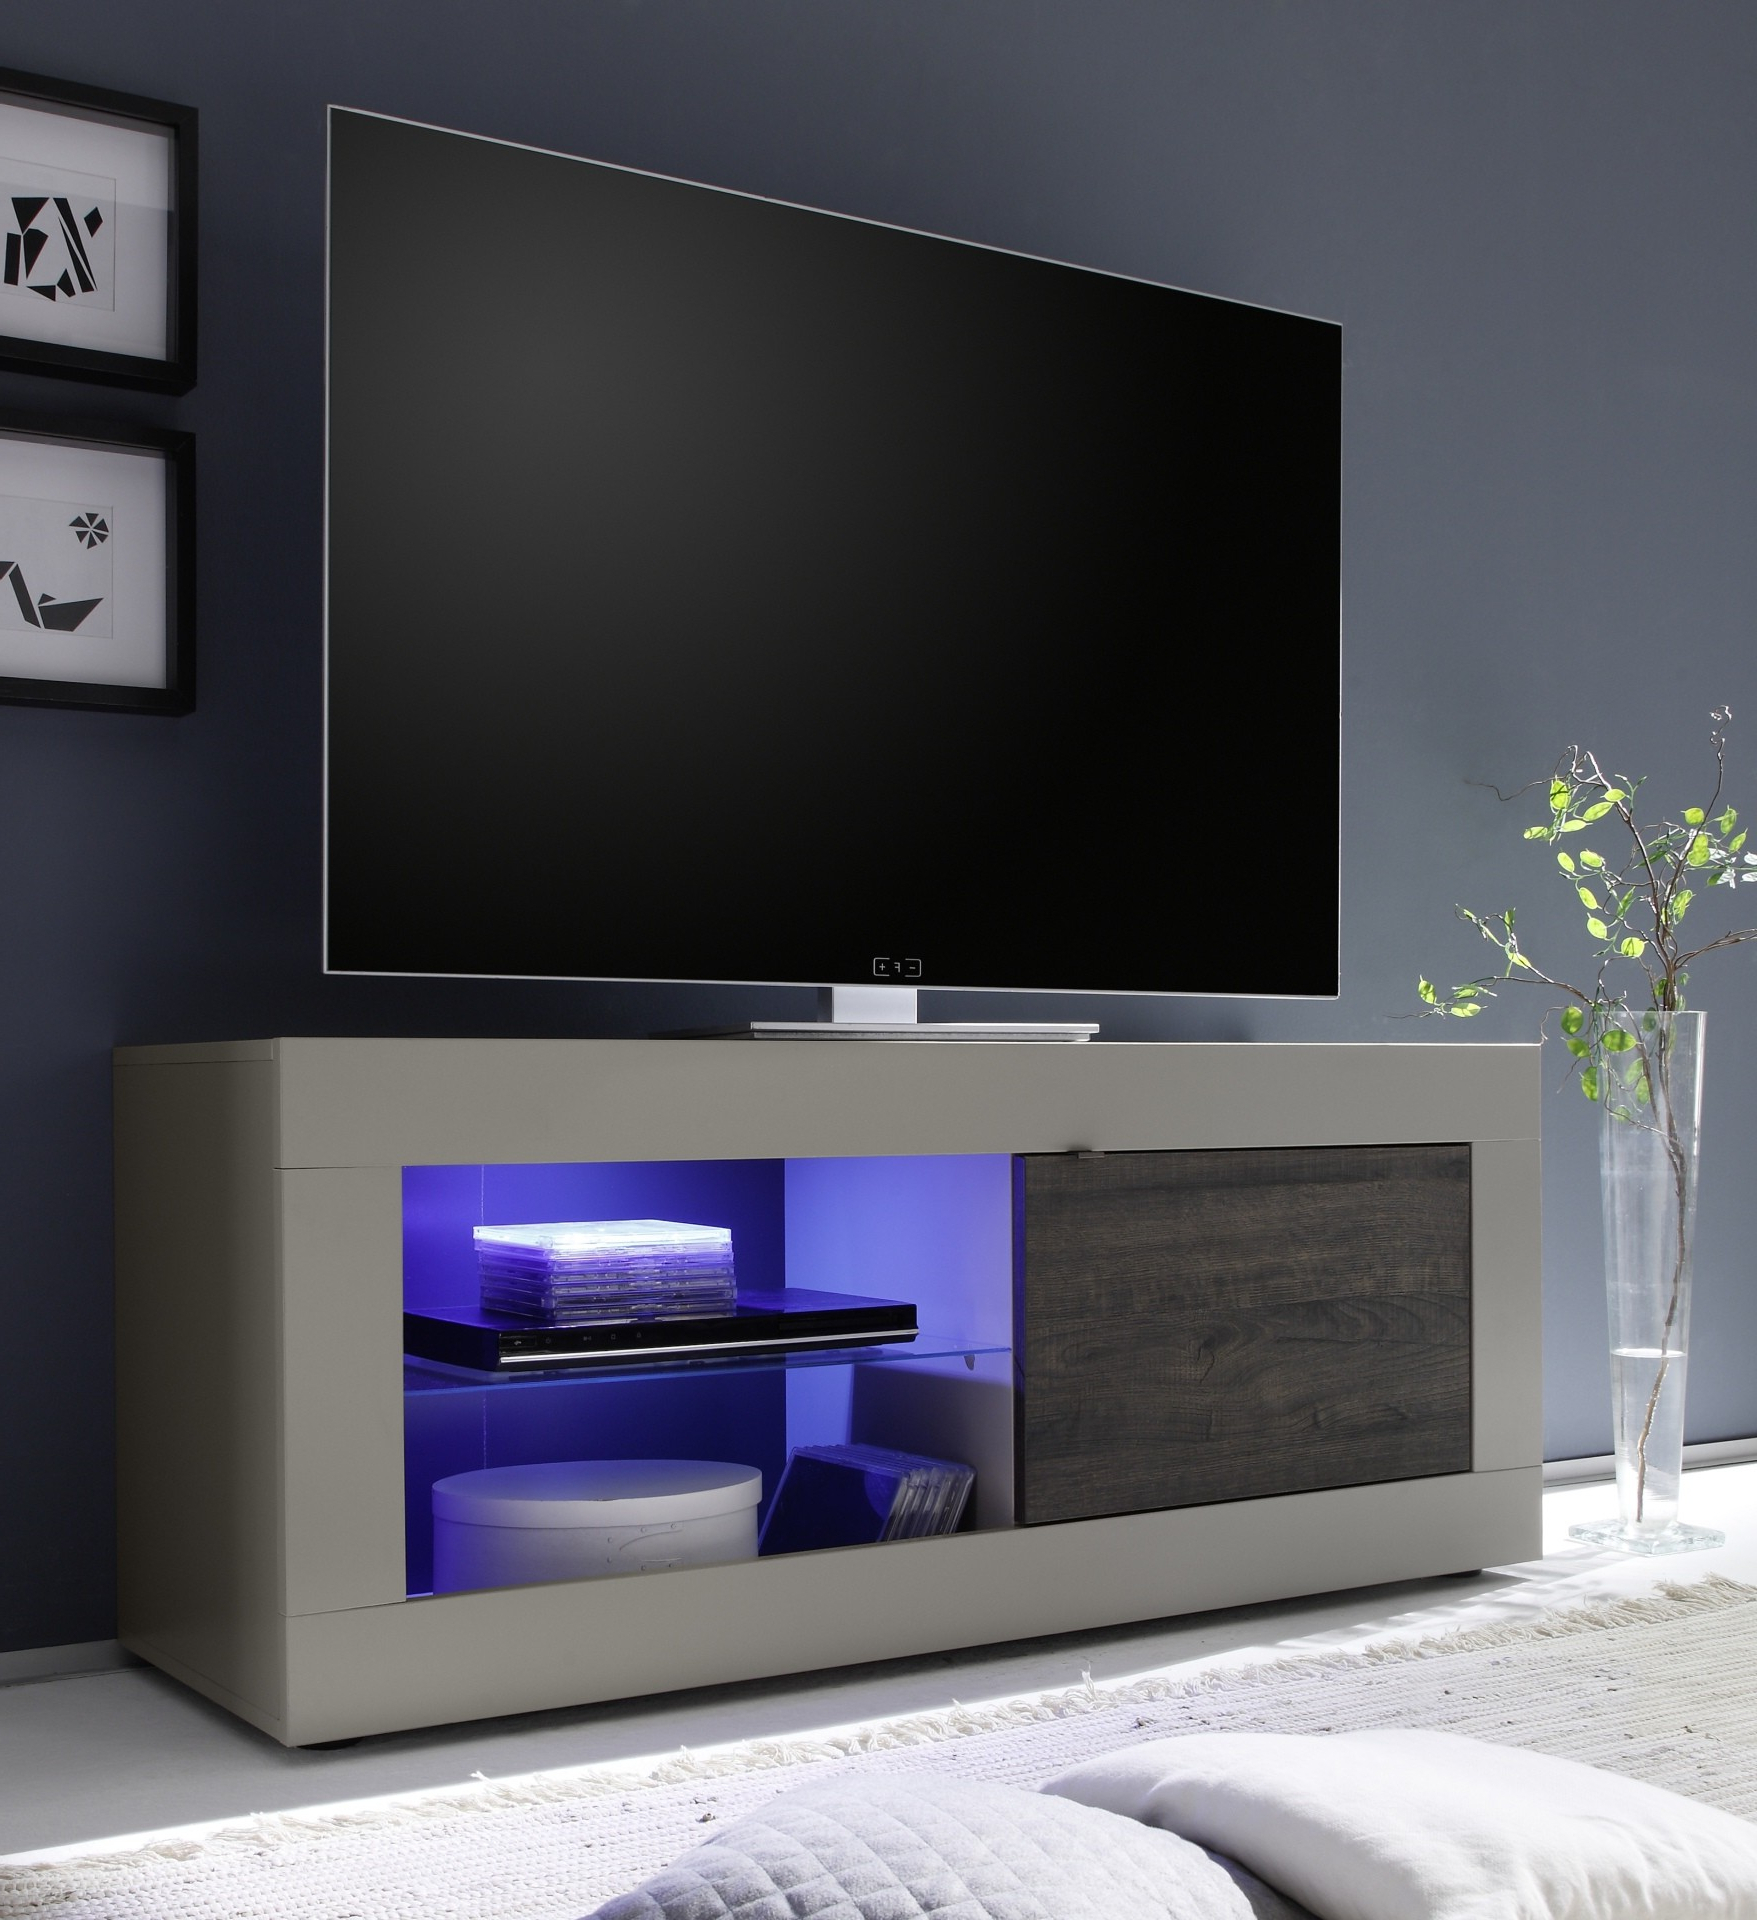 Dolcevita Matt Beige Tv Stand – Tv Stands (1239) – Sena Home Furniture Within Preferred Funky Tv Stands (Gallery 1 of 20)